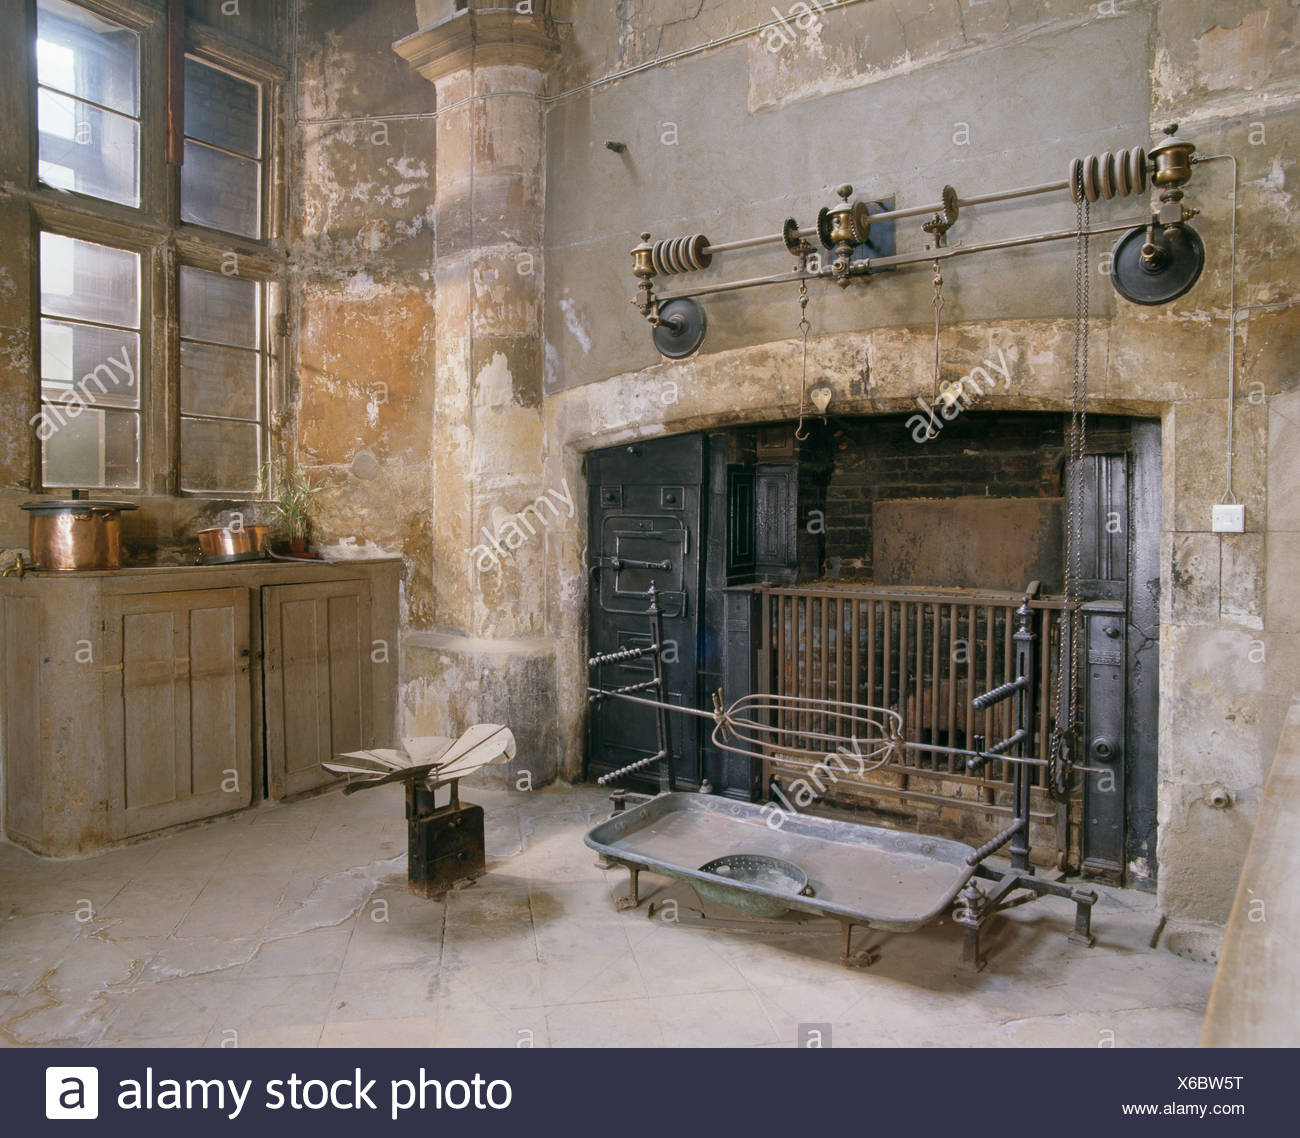 Etonnant Large Oven And Cooking Racks In Old Country Kitchen With Stone Walls